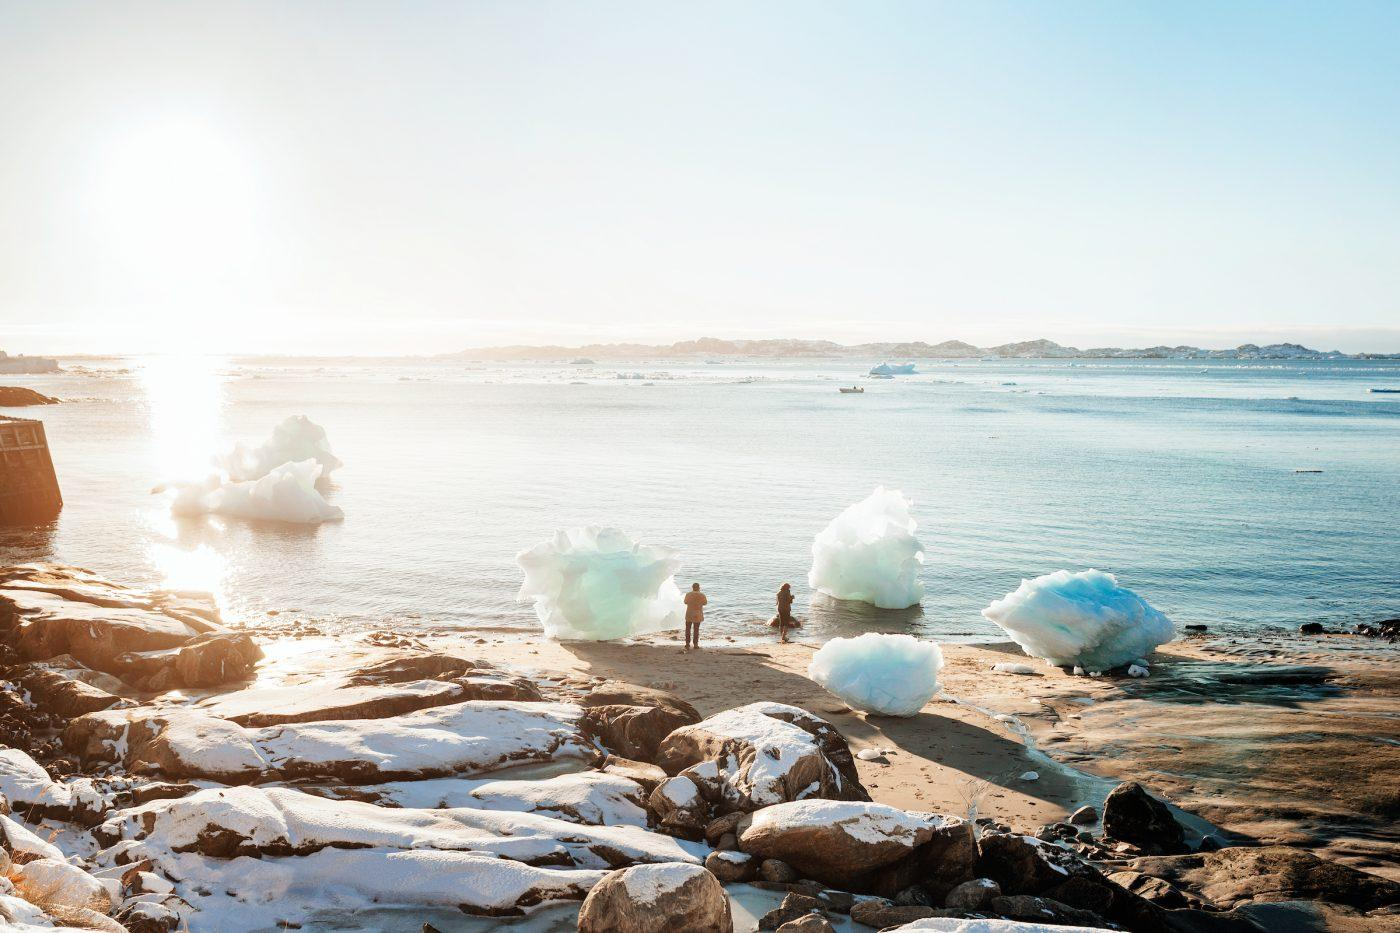 Two tourists on the beach in the colonial harbour of Nuuk in Greenland taking photos of washed up iceblocks in the sunset. Photo by Rebecca Gustafsson